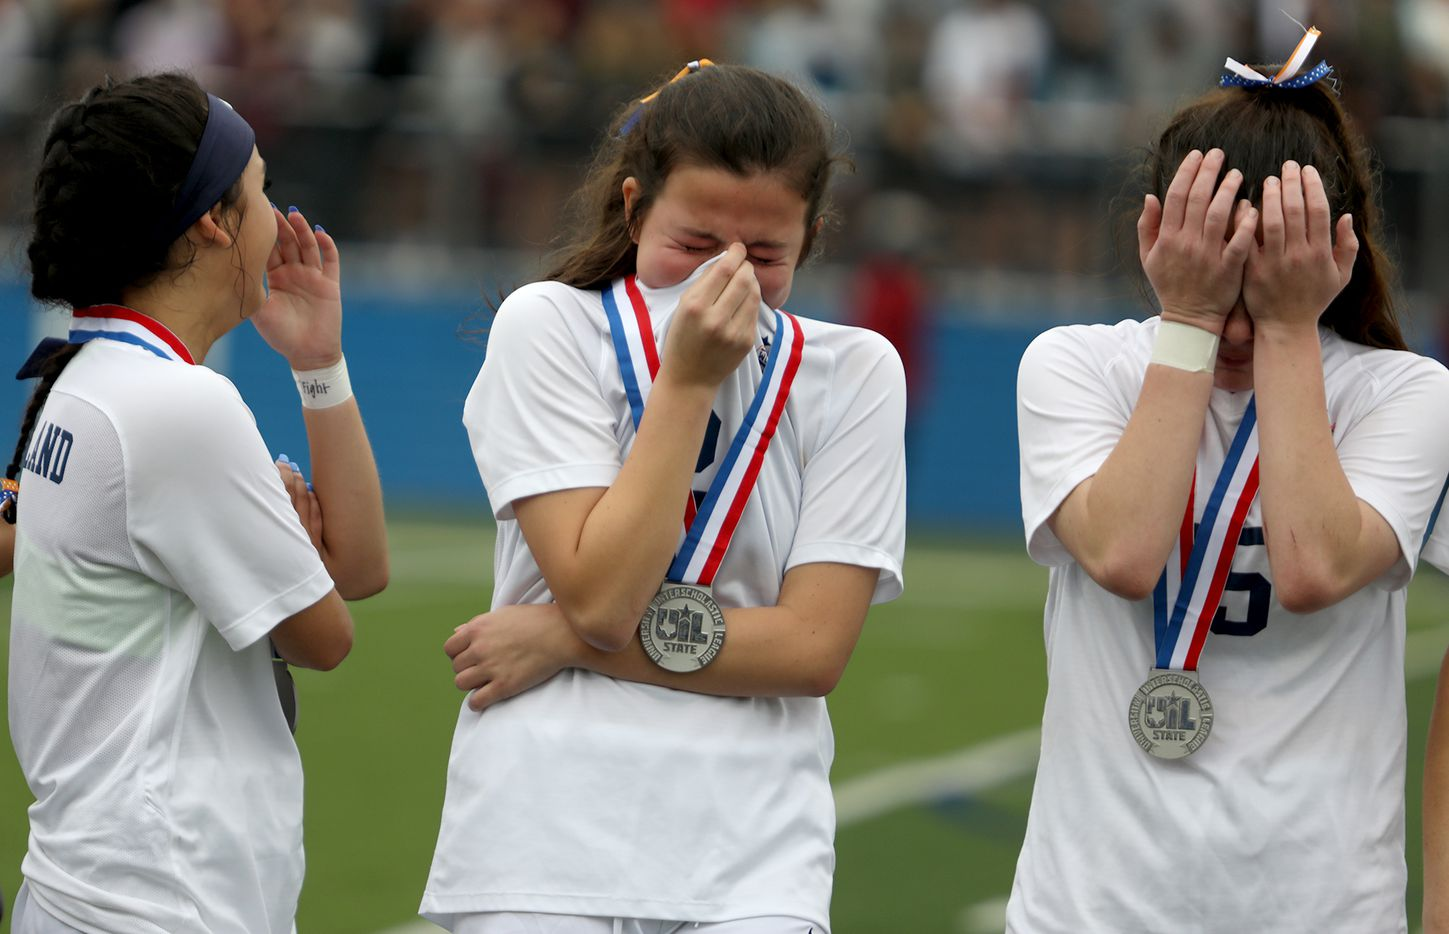 Wakeland's Natalie Cox (from left), Rachel Perry, and Ally Perry react after their UIL 5A girls State championship soccer game against Dripping Springs at Birkelbach Field on April 16, 2021 in Georgetown, Texas. Dripping Springs won 2-1.  (Thao Nguyen/Special Contributor)